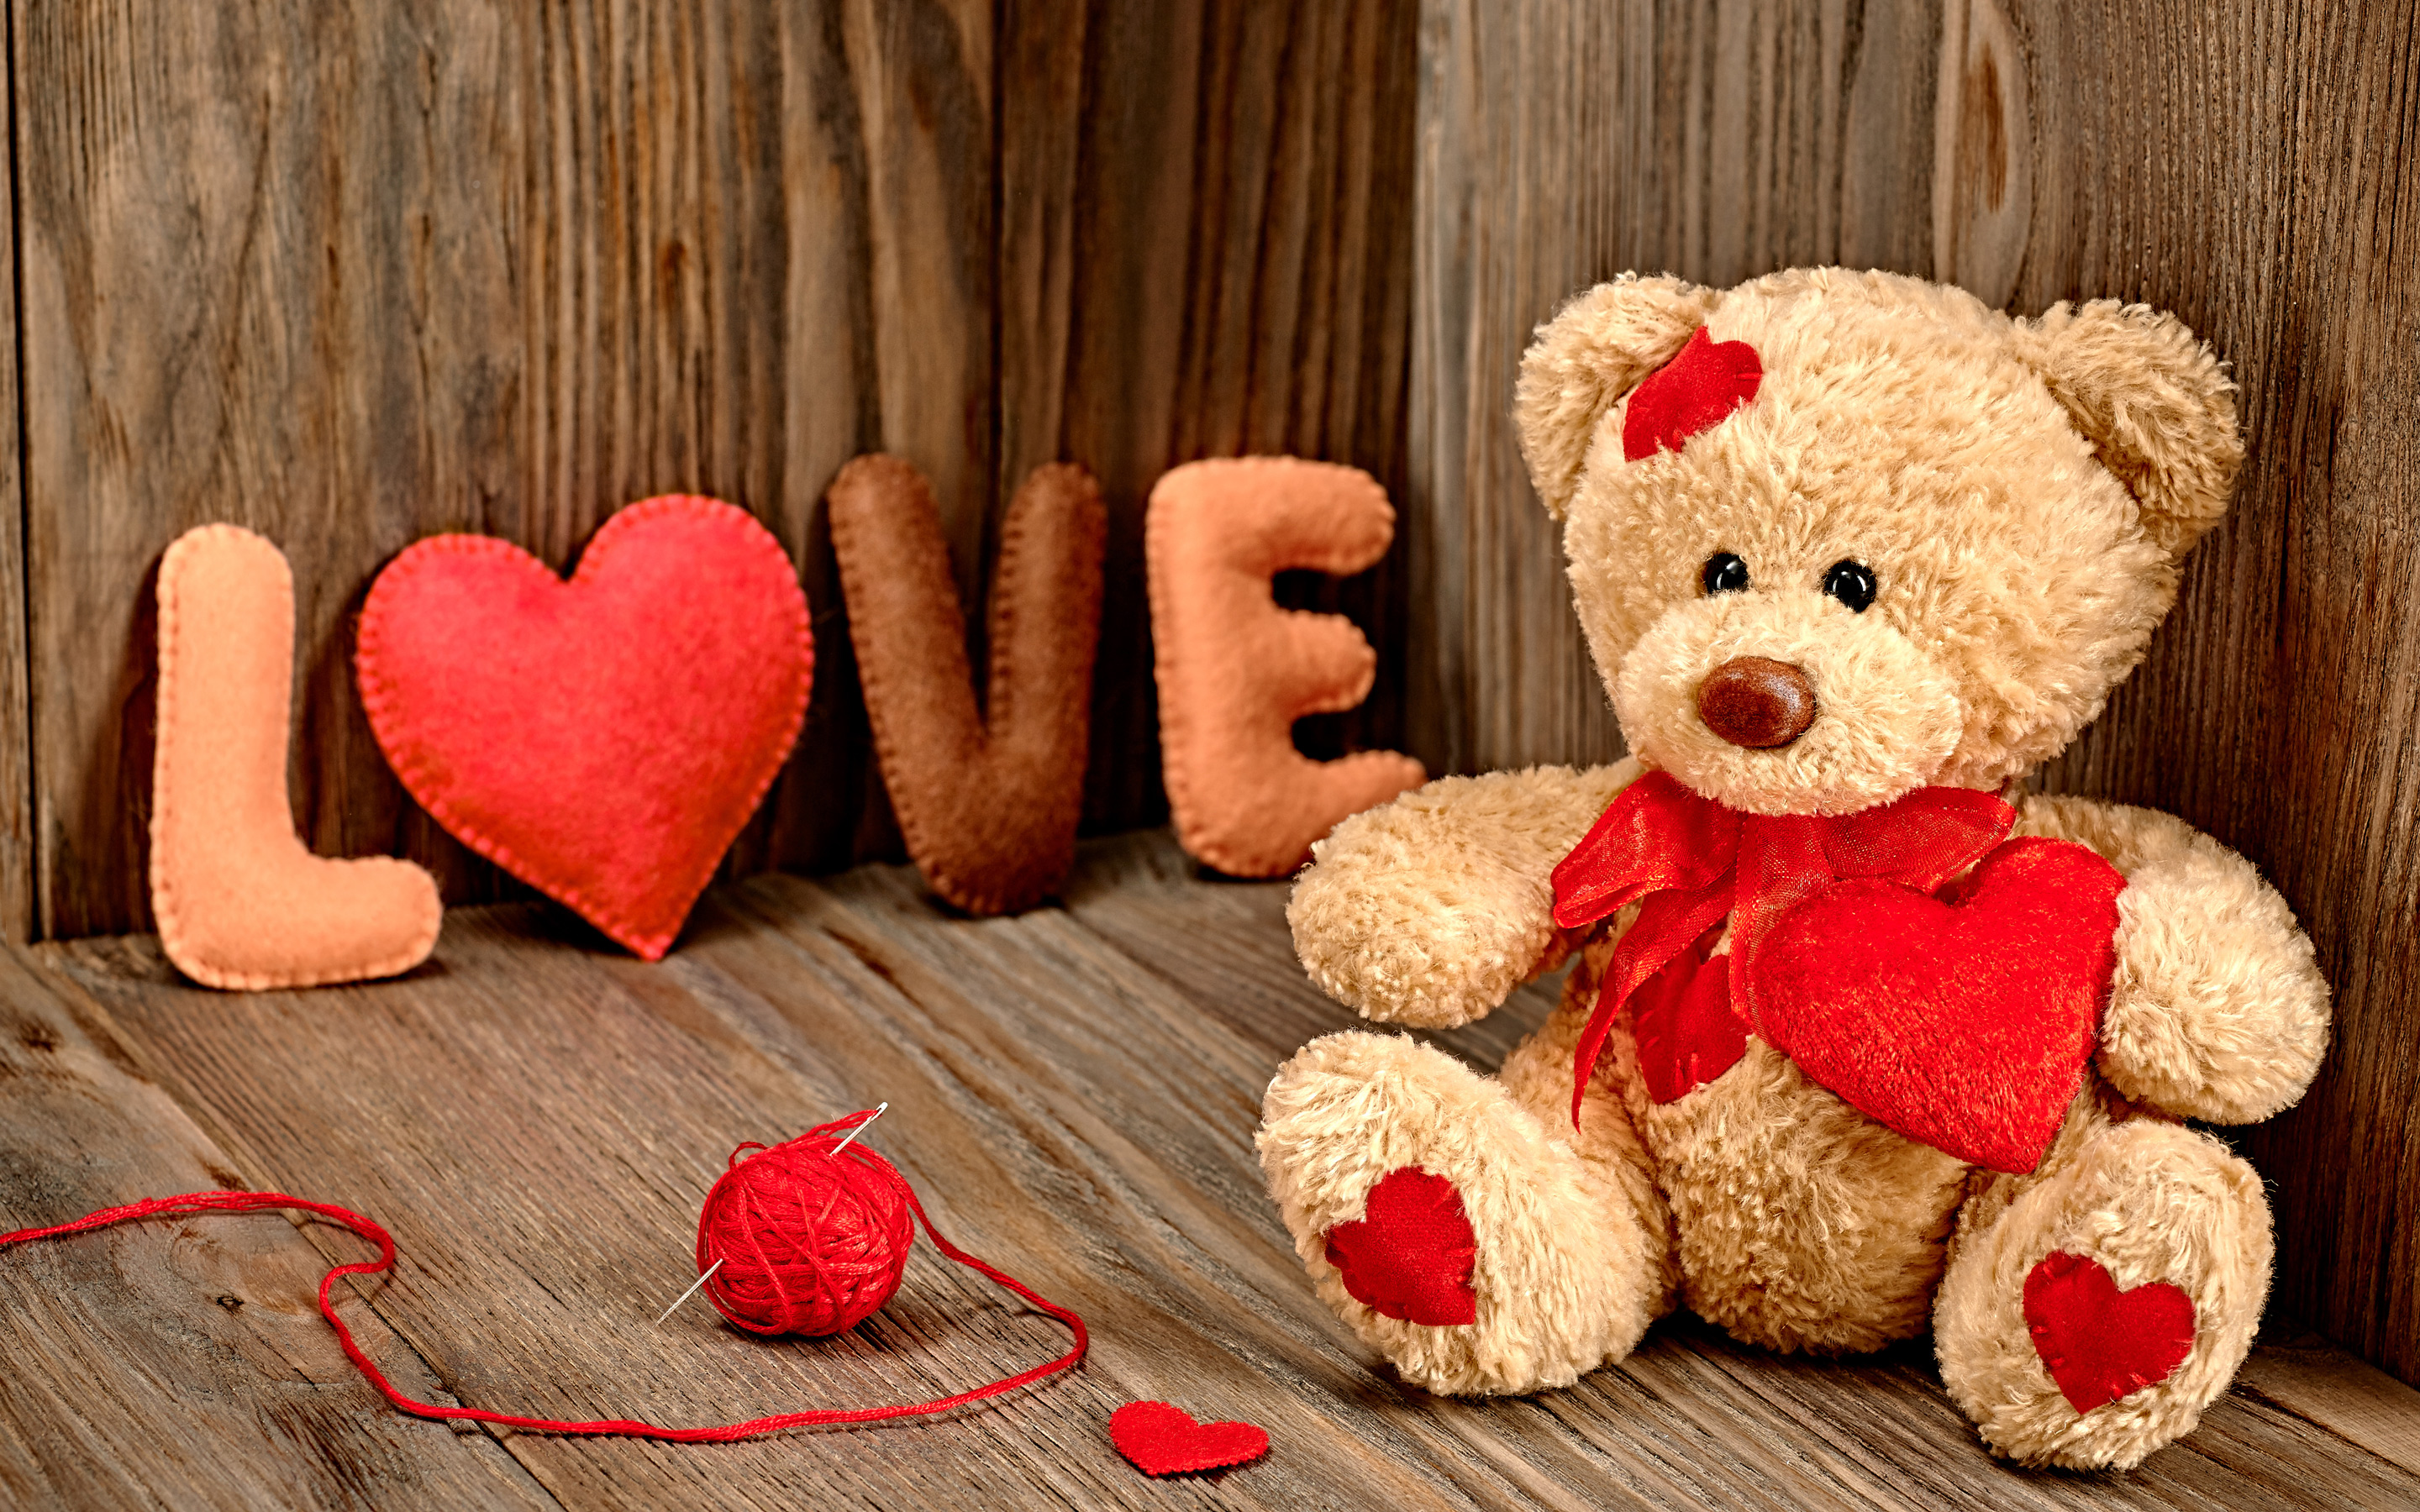 Teddy Day dh wallpaper